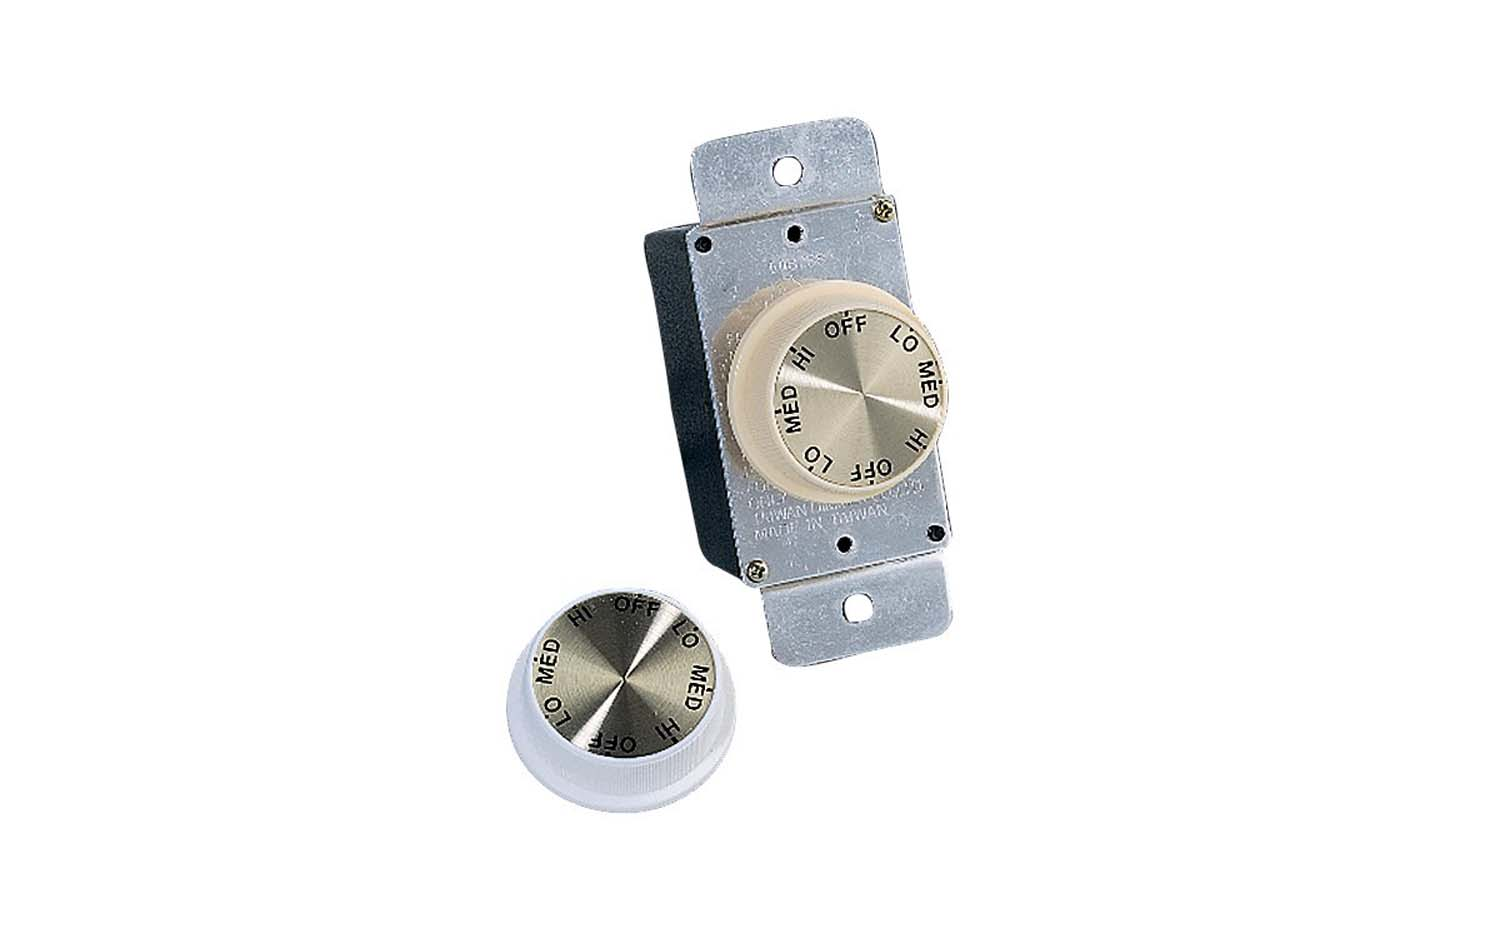 3 Speed Rotary Wall Control from the Wall Controls collection by Monte Carlo ESWC 1